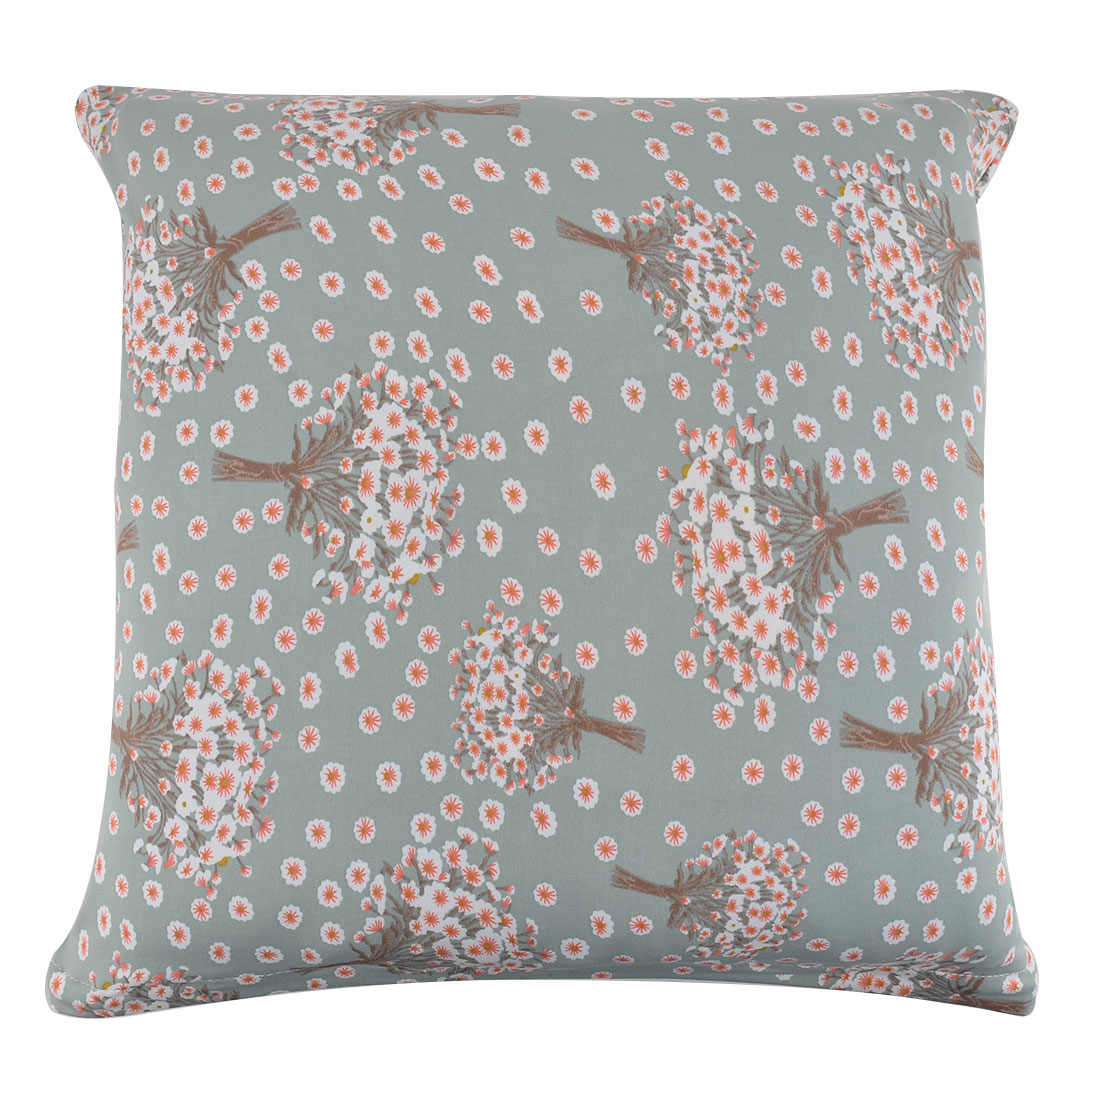 Home 18 x 18 Inches Polyester Hyacinth Print Square Pillowcase Cushion Cover